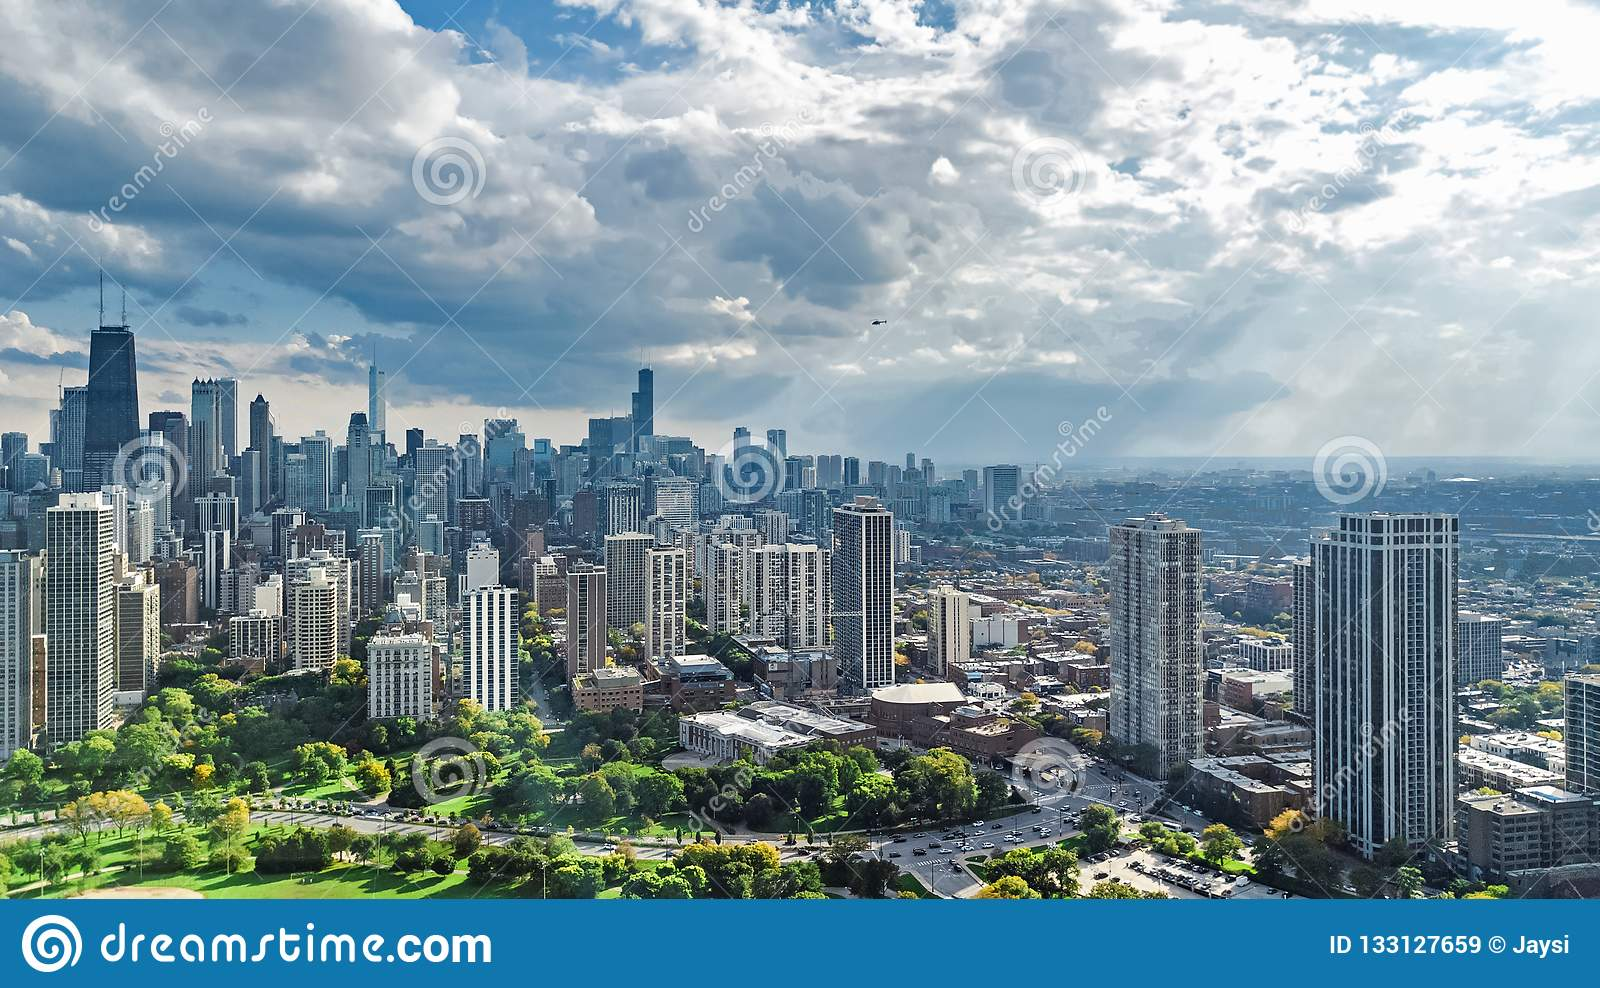 Chicago skyline aerial drone view from above, lake Michigan and city of Chicago downtown skyscrapers cityscape from Lincoln park